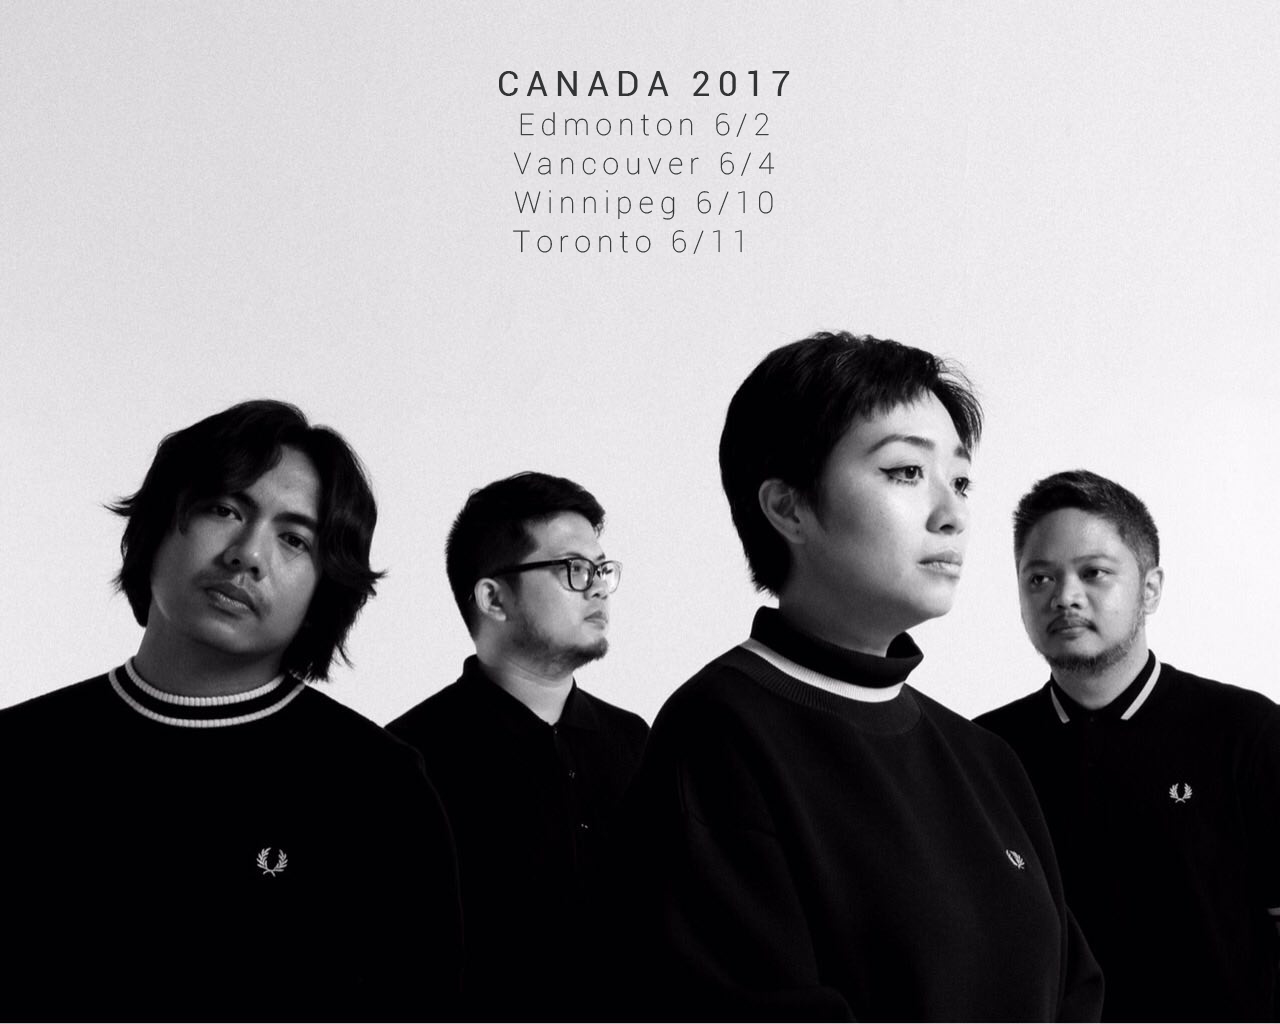 UDD CANADA POSTER